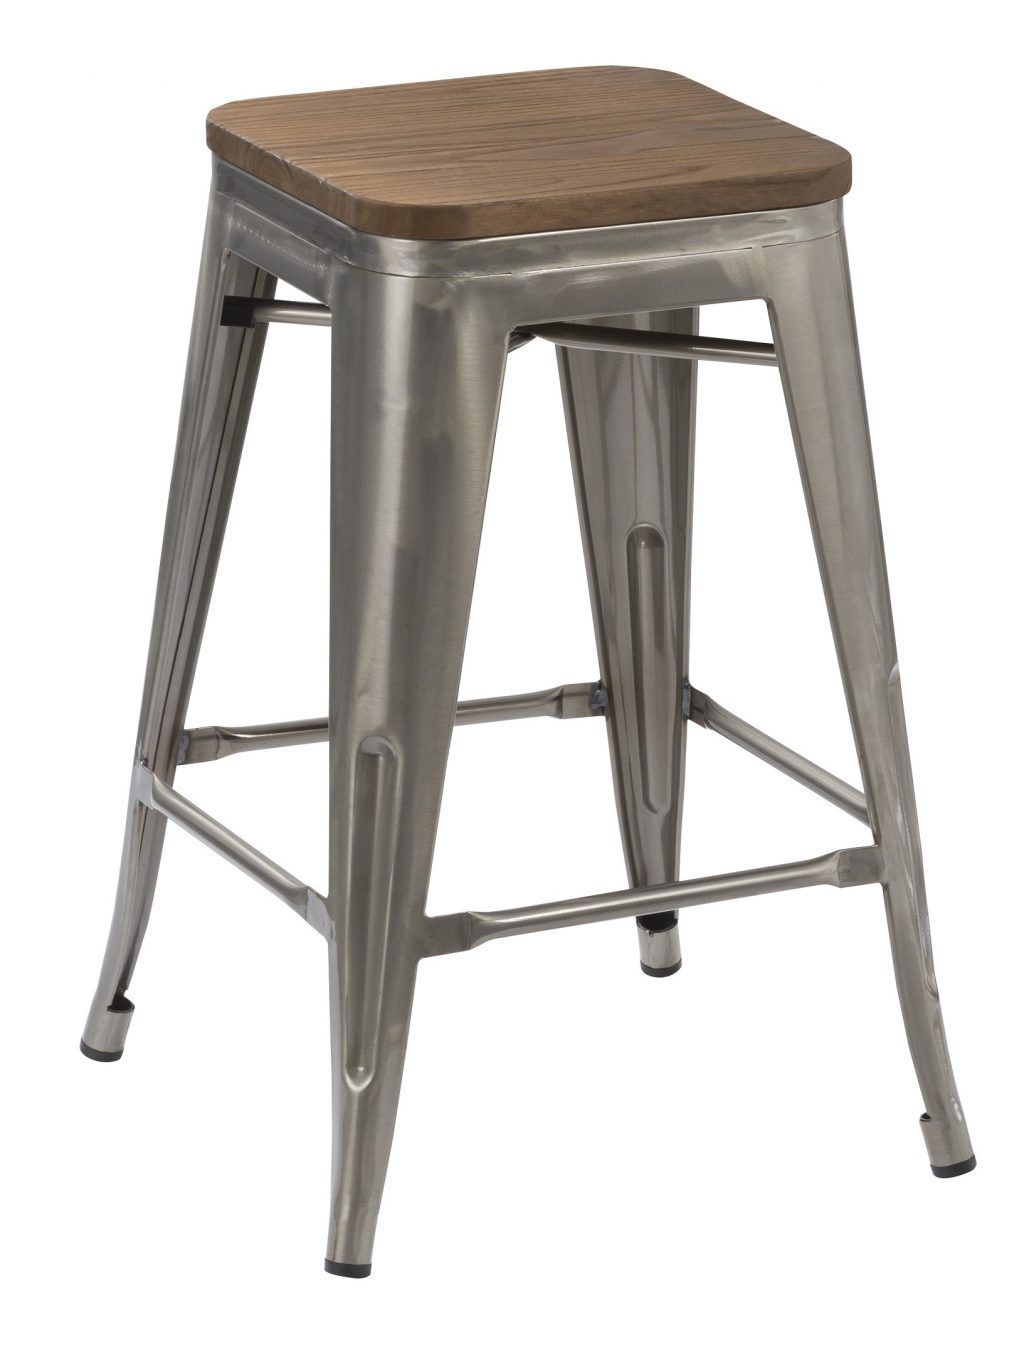 Bar Stools Our Pick of the Best Bar stools, Rustic bar